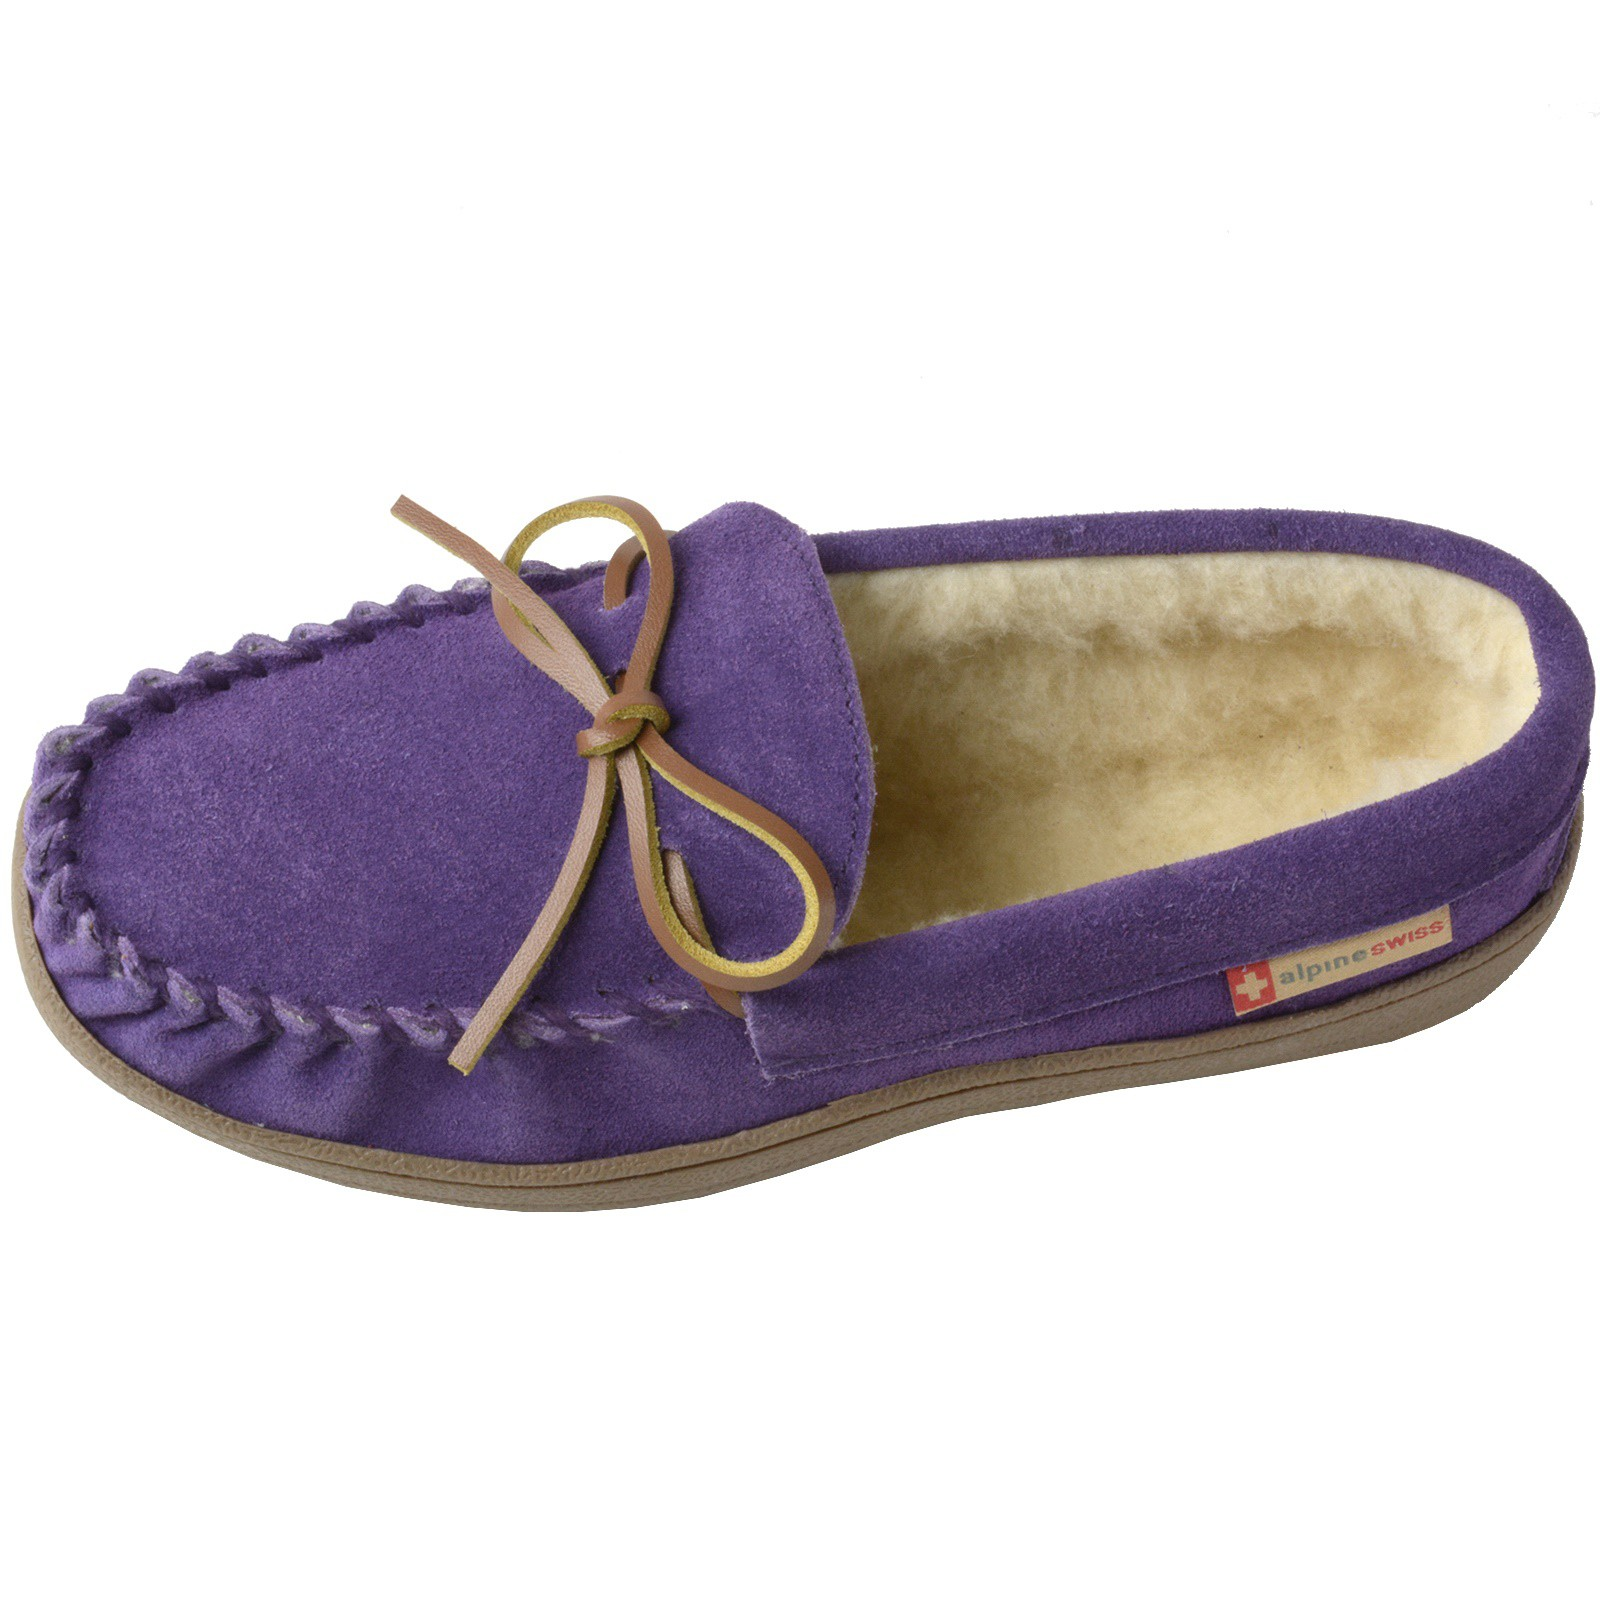 Alpine-Swiss-Sabine-Womens-Suede-Shearling-Moccasin-Slippers-House-Shoes-Slip-On miniature 37